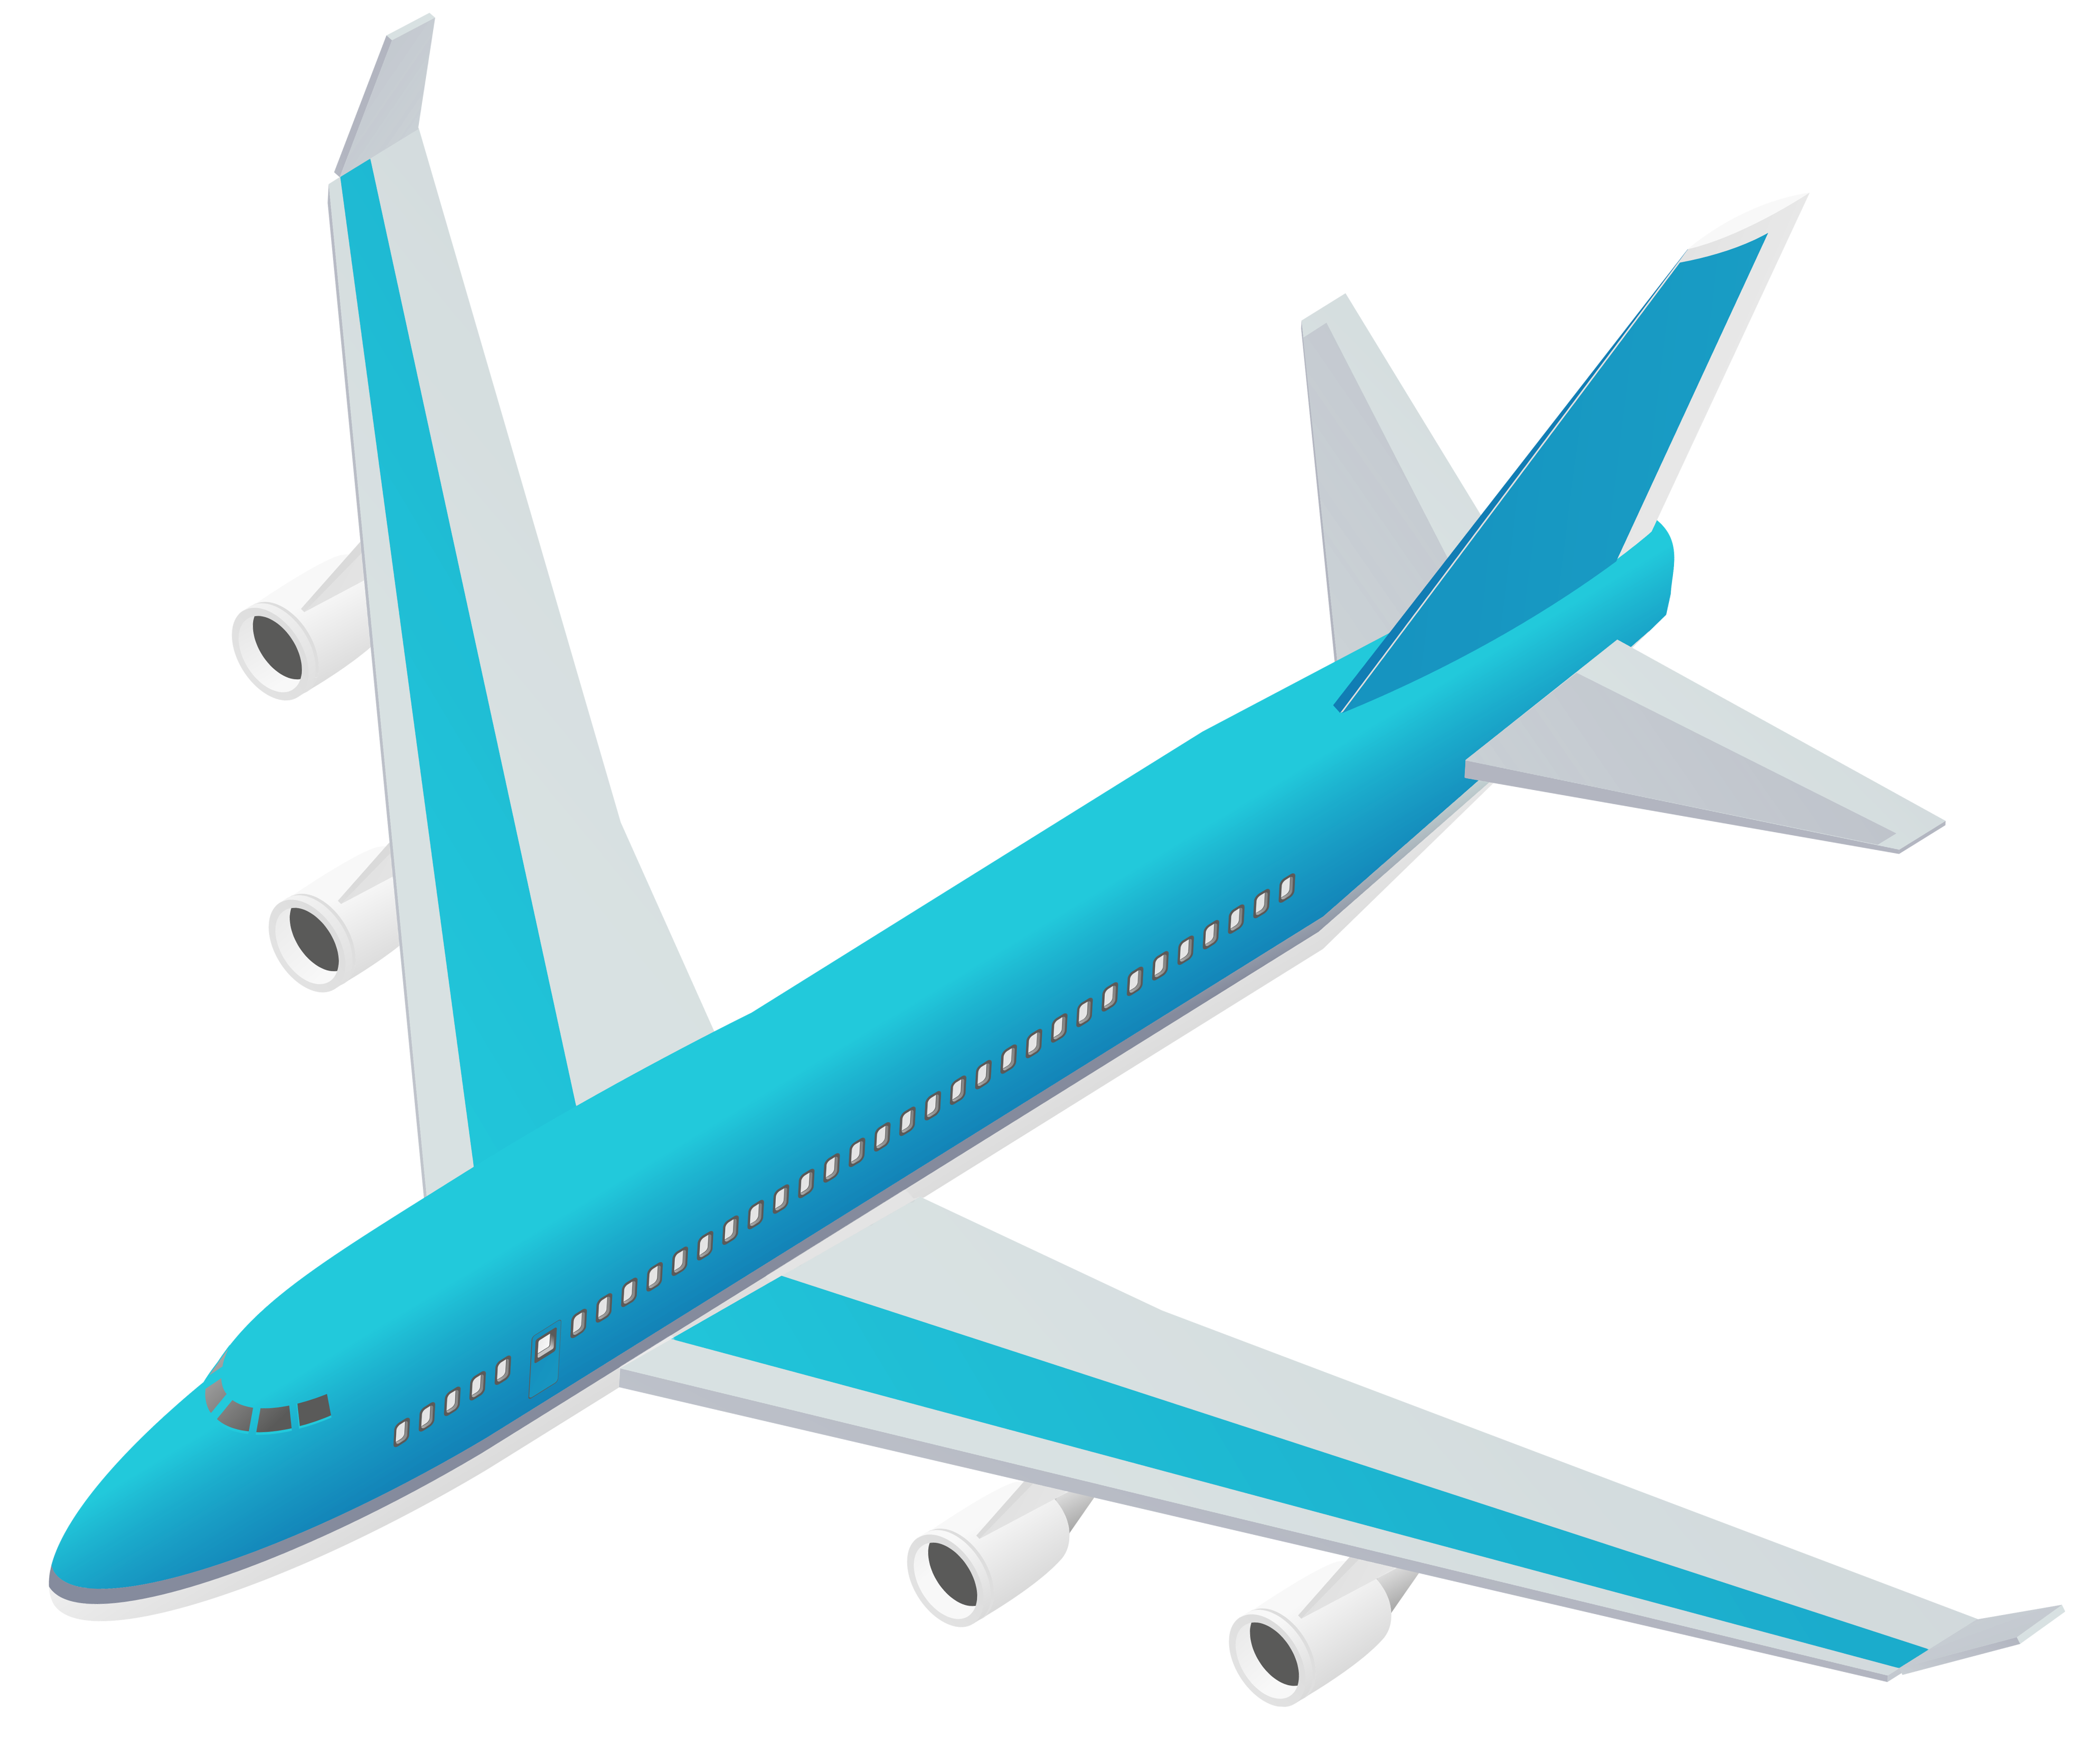 clipart airplane transparent background